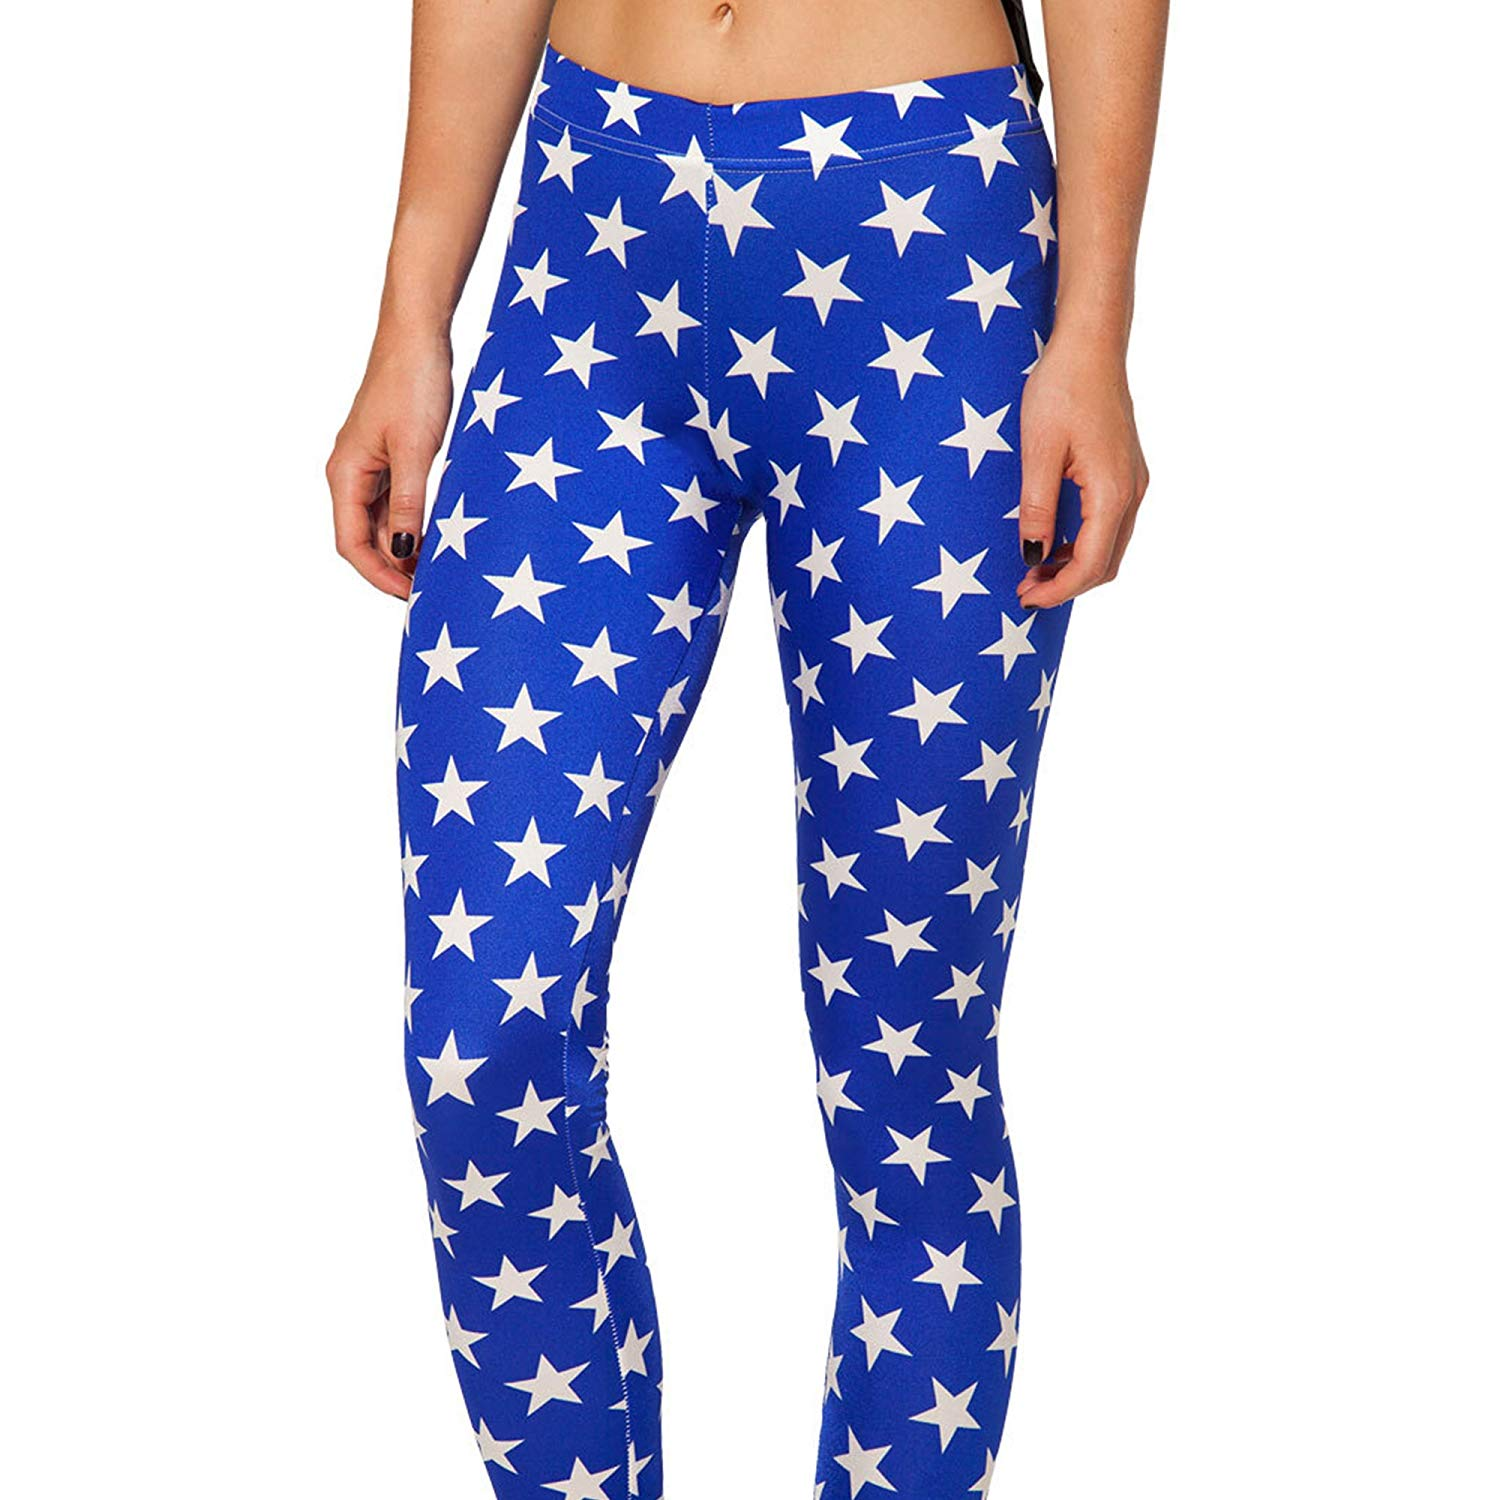 Ensasa Women'S Fashion Digital Print Blue Stars Spandex Stretchy Leggings